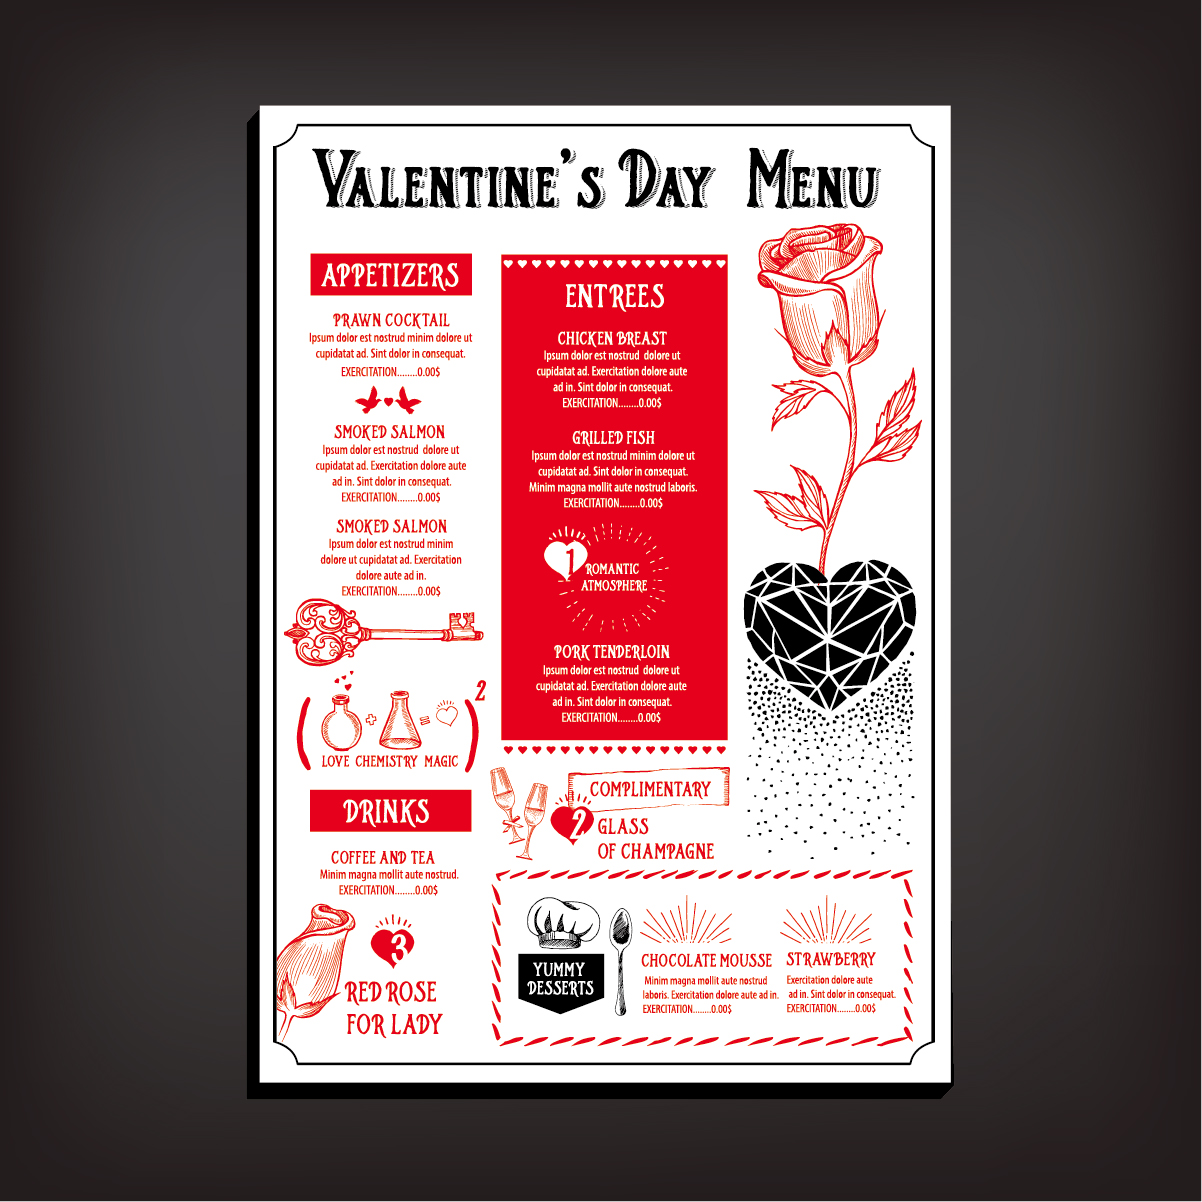 Valentines Day Restaurant Menu Vintage Vector 08 Free Download